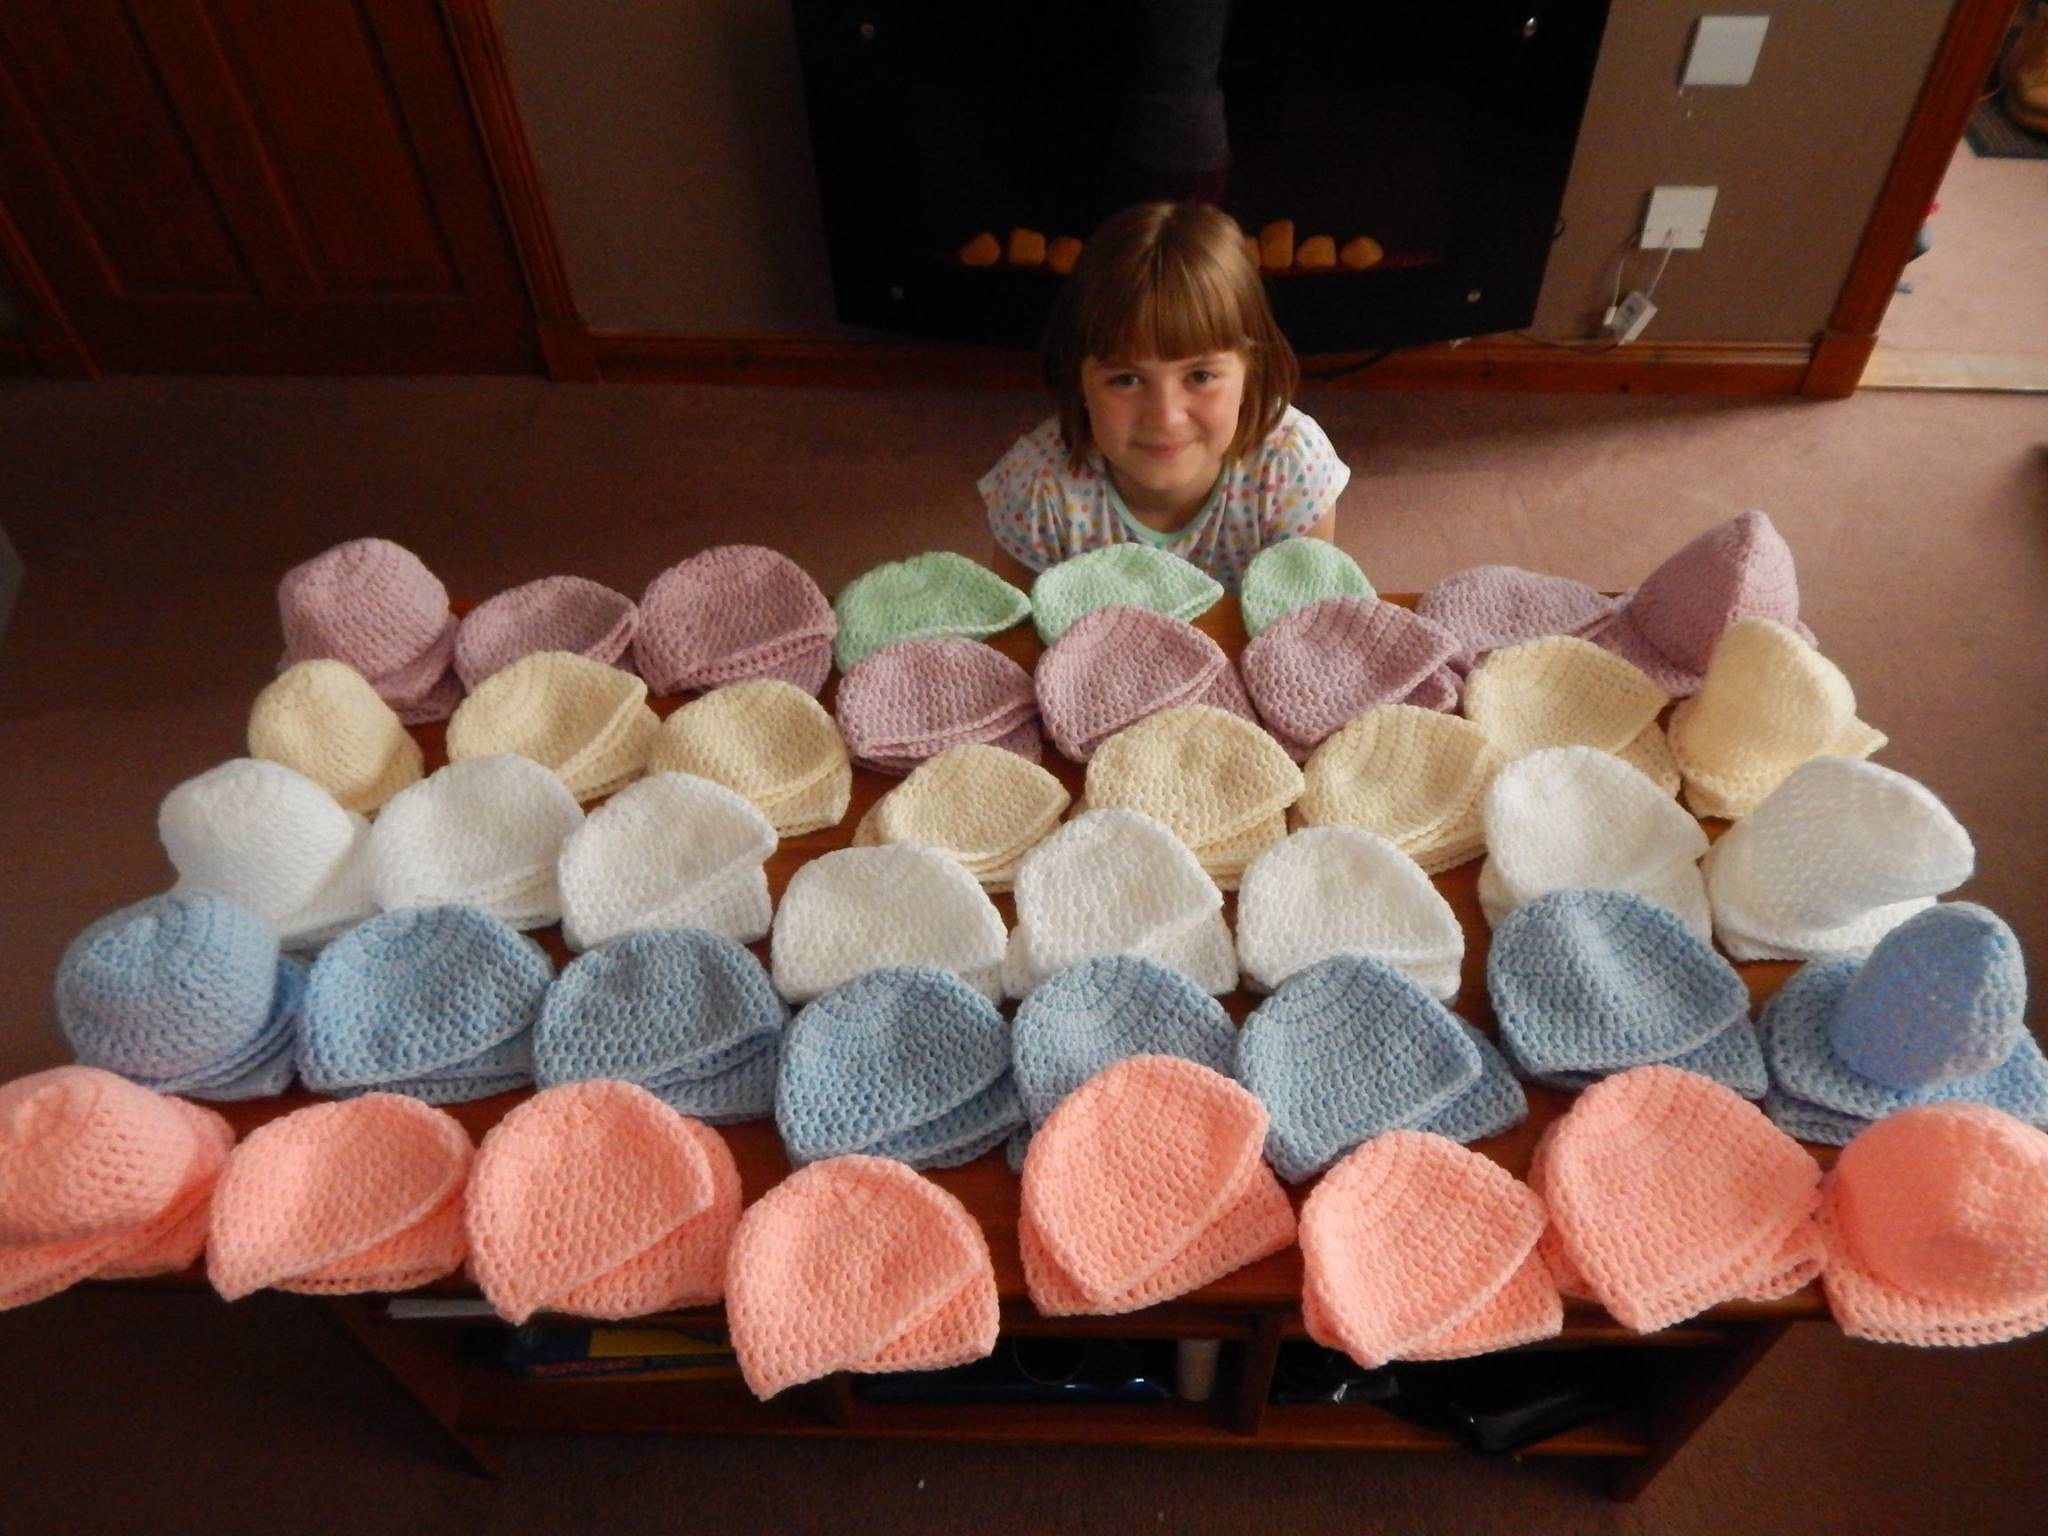 Chloe Milne spent countless hours over the holidays knitting the tiny garments for infants in Dr Gray's Hospital in Elgin